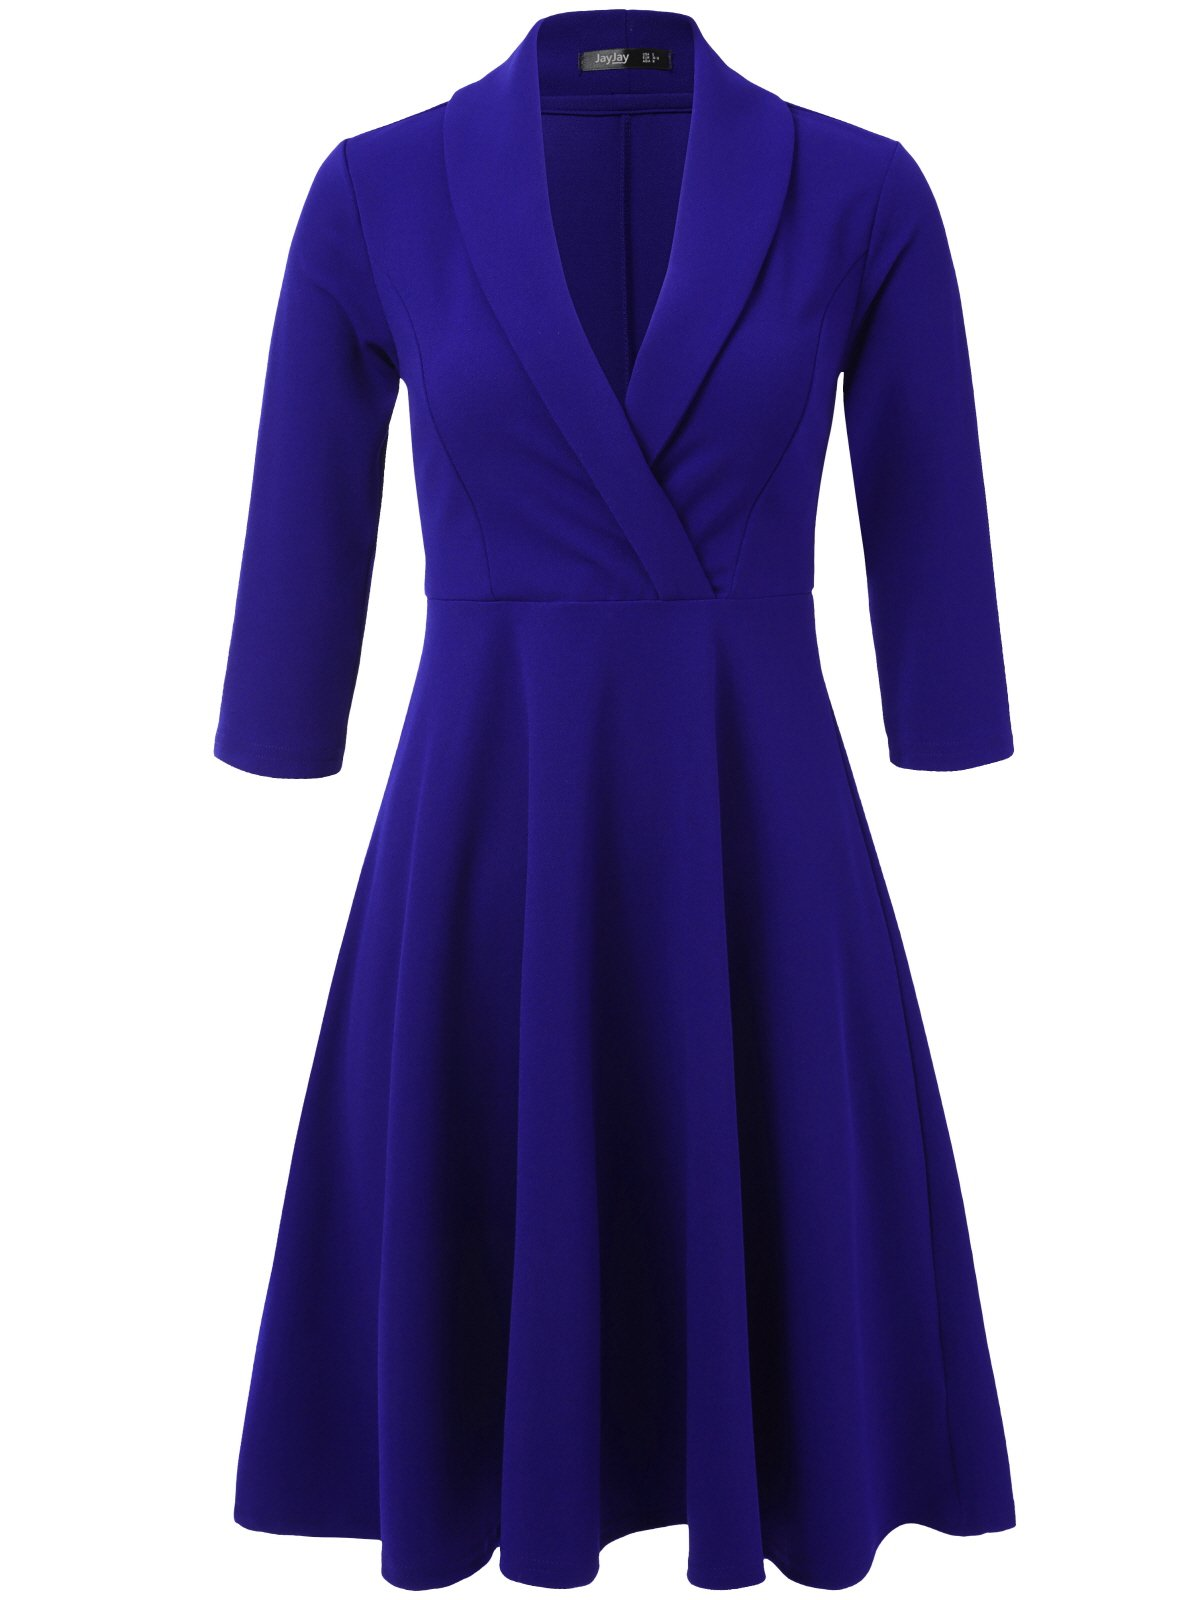 JayJay Women 3/4 Sleeve Wear to Work Lapel Party Fit and Flare Faux Wrap Dress,RoyalBlue,S